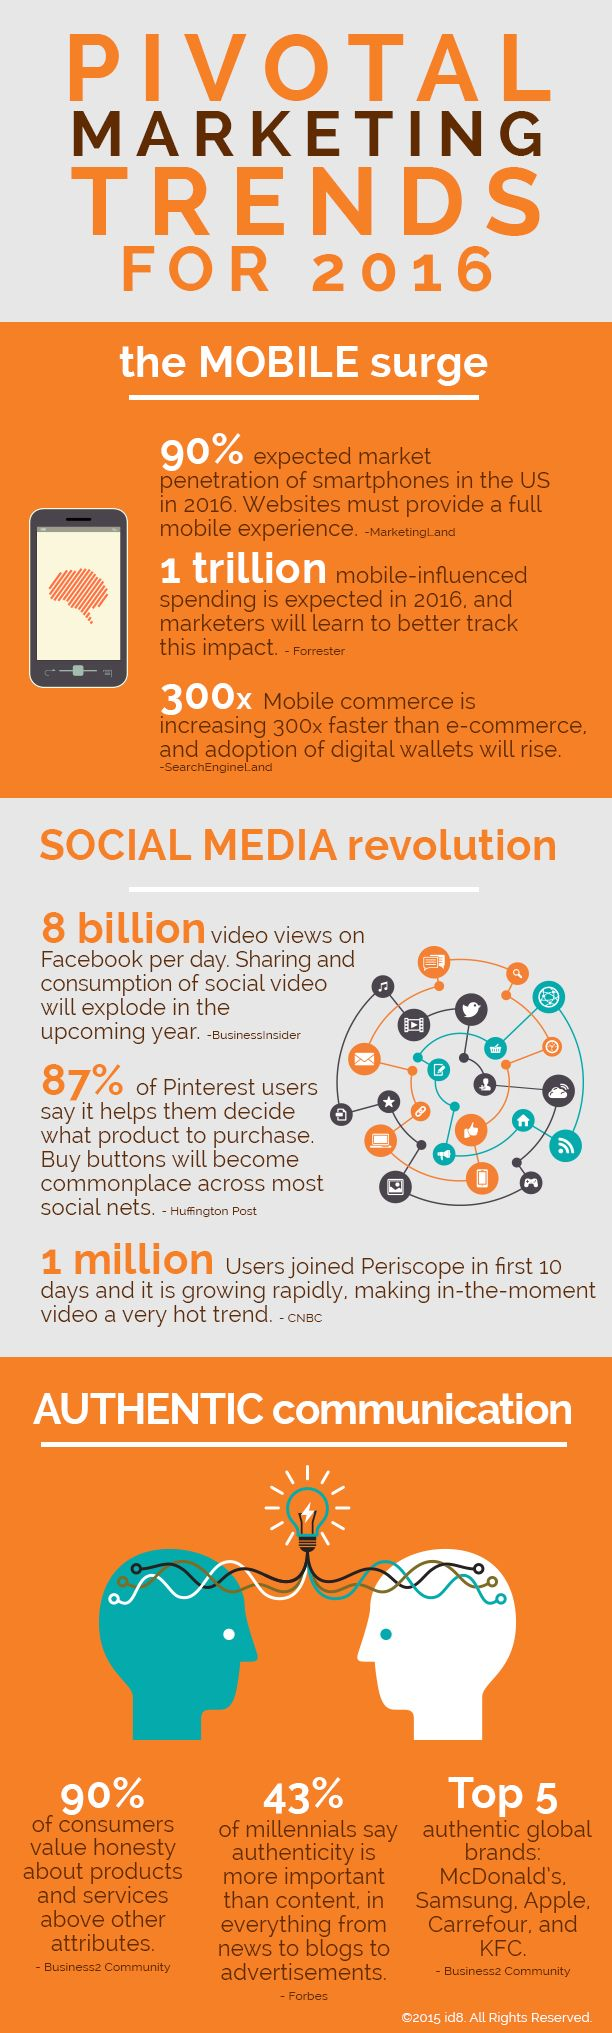 Infographic: pivotal marketing trends 2016 via id8 agency, Atlanta GA…